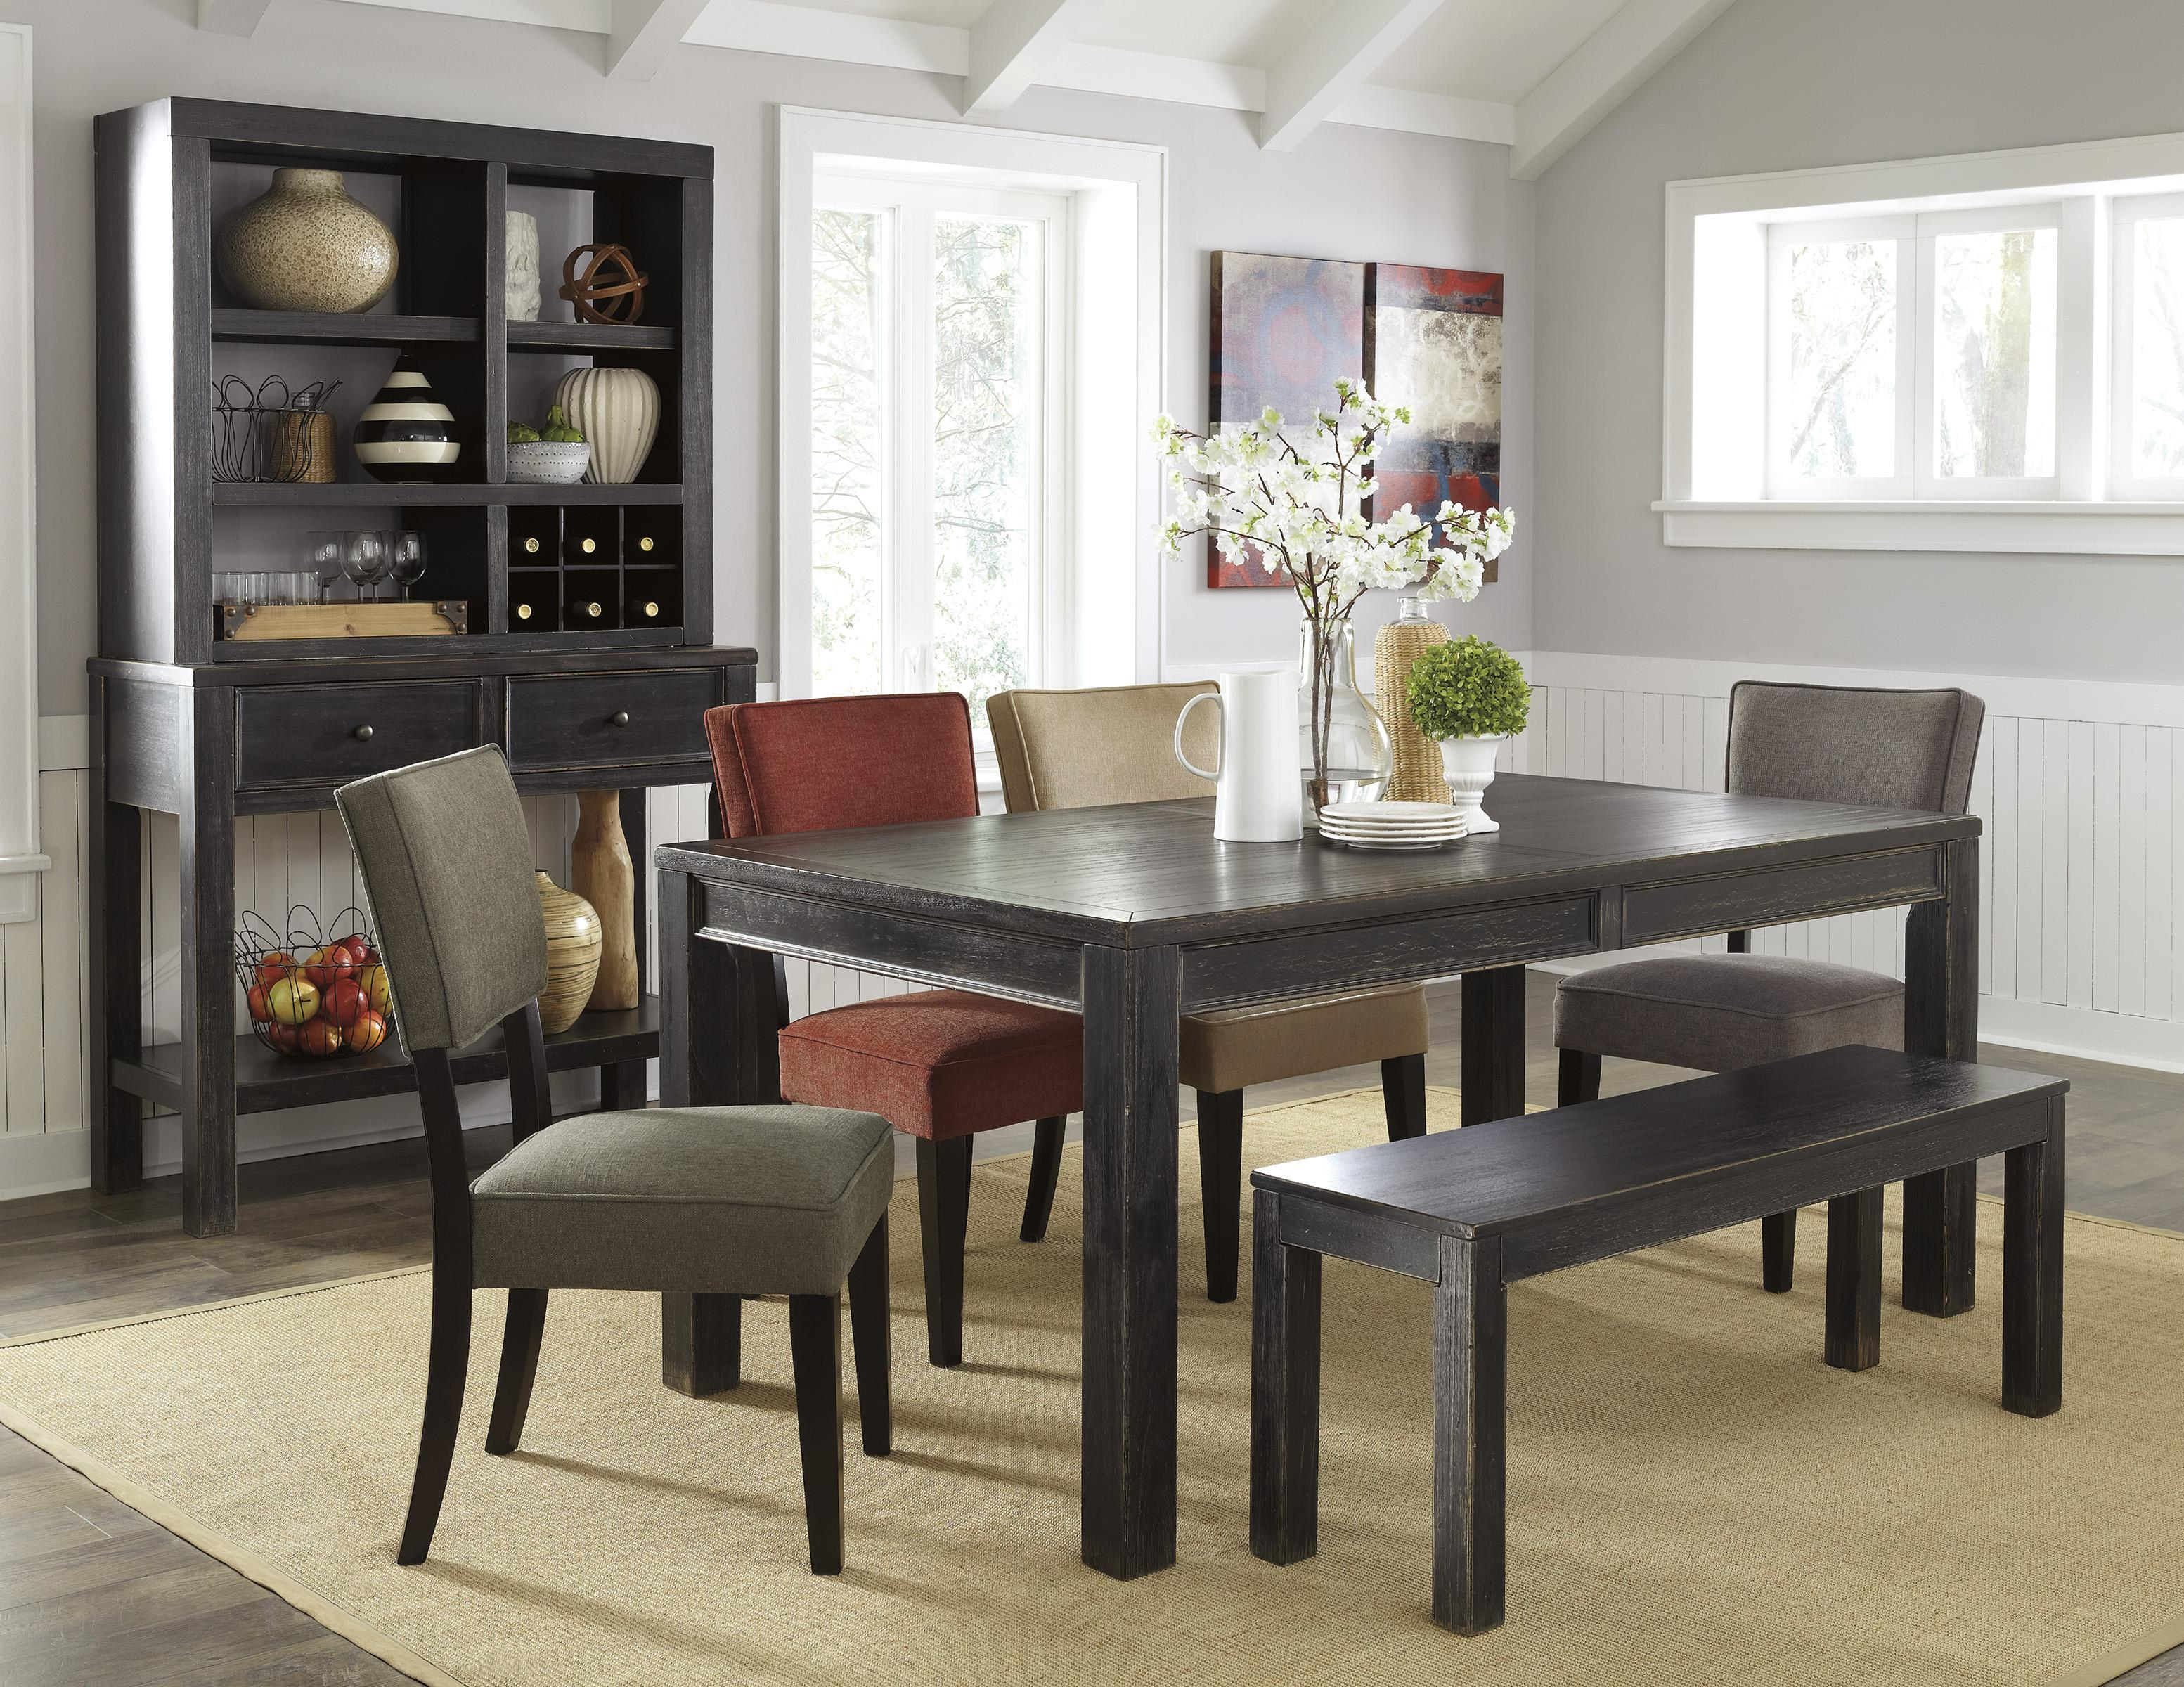 Signature Design by Ashley Gavelston Casual Dining Room Group - Item Number: D532 Dining Room Group 10